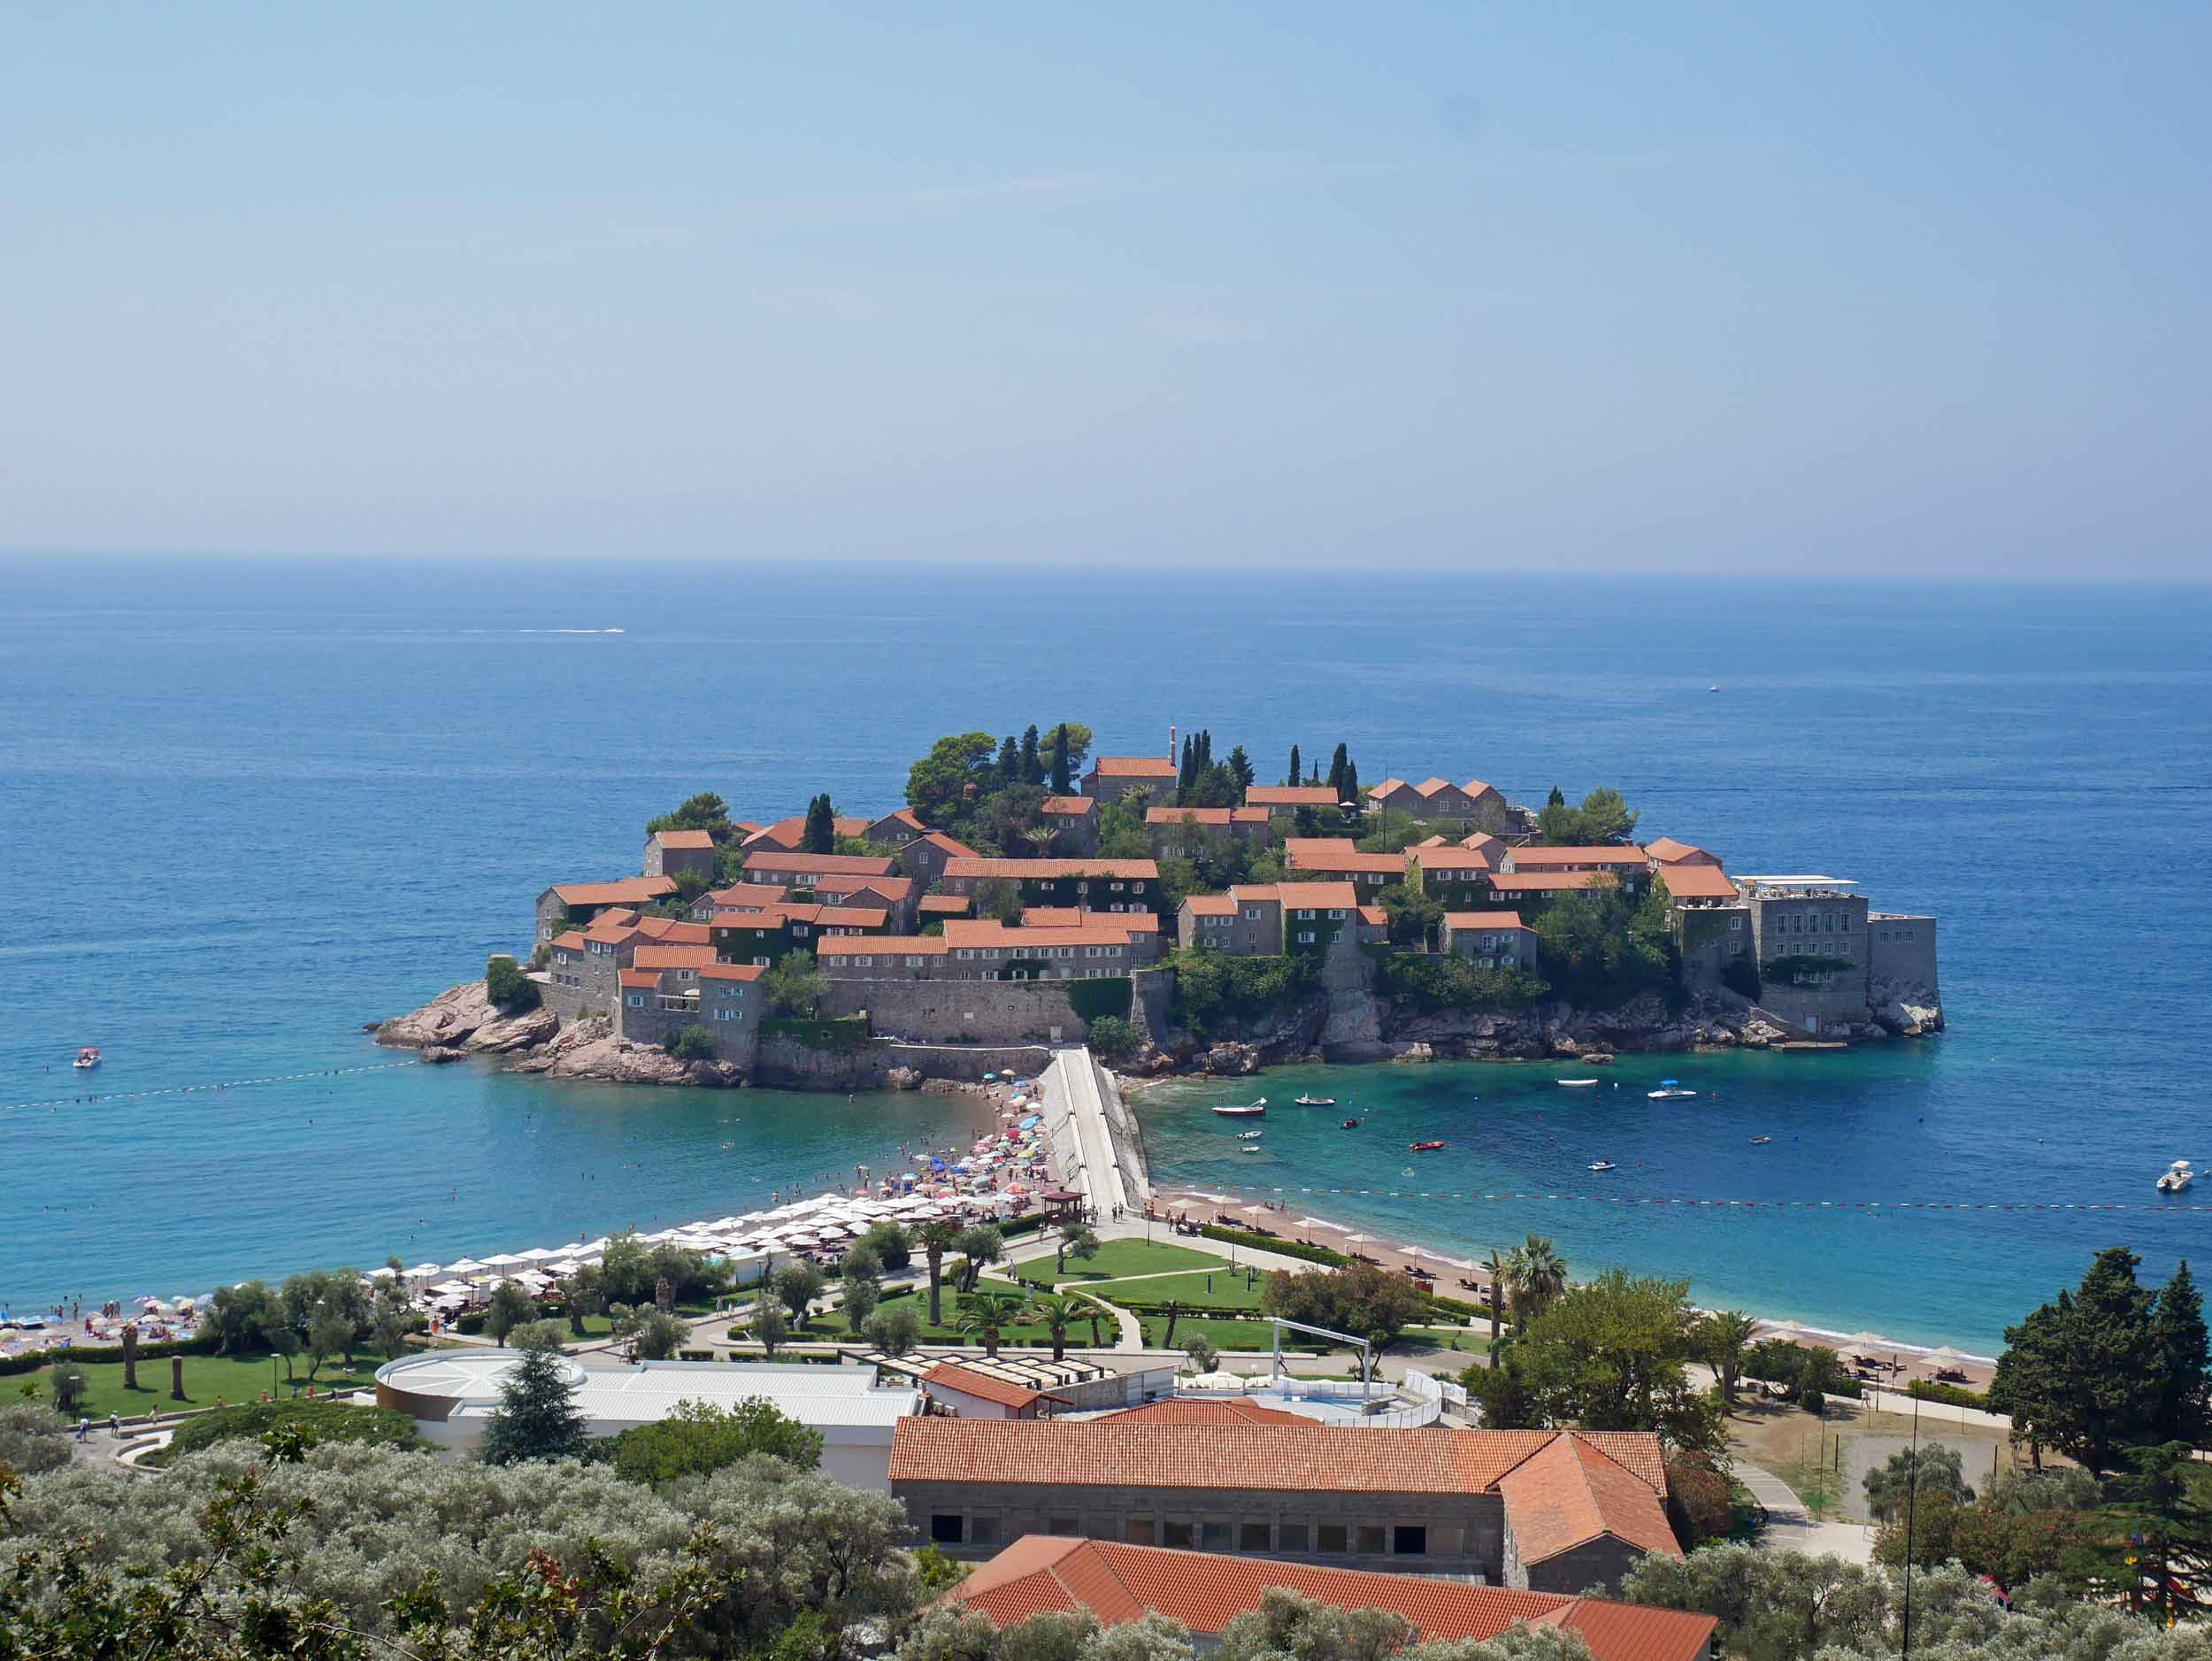 Just south of famed coastal playground Budva lies the dreamy islet of Sveti Stefan, which is now home to an exclusive 5-star resort.